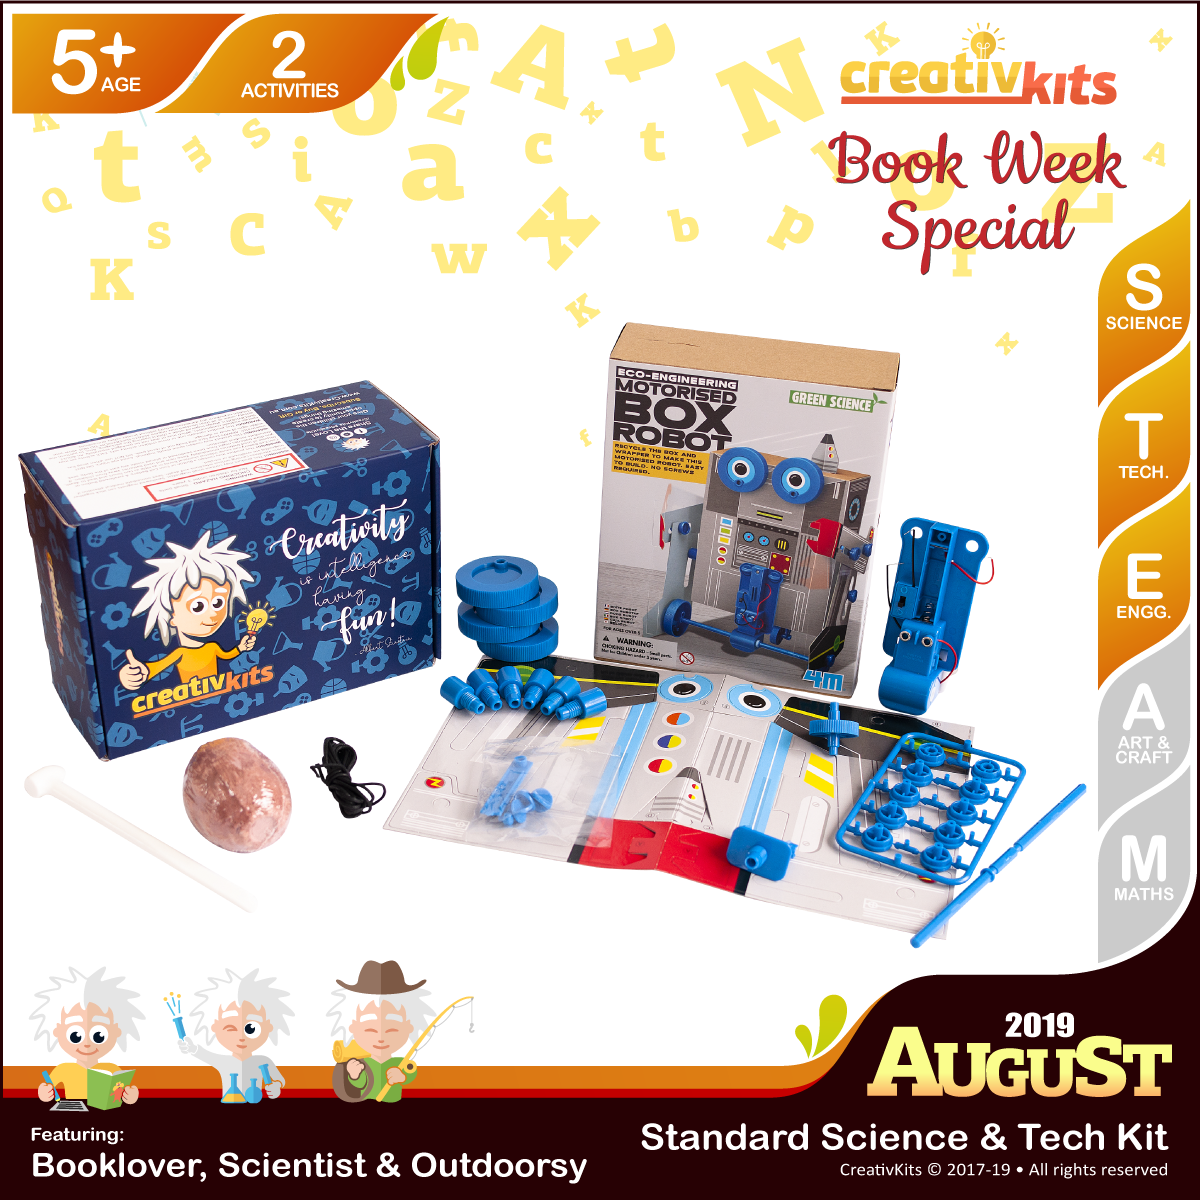 August Standard Science & Tech. Kit • Age 5 plus • BYO Box Robot and Shark Tooth Fossil